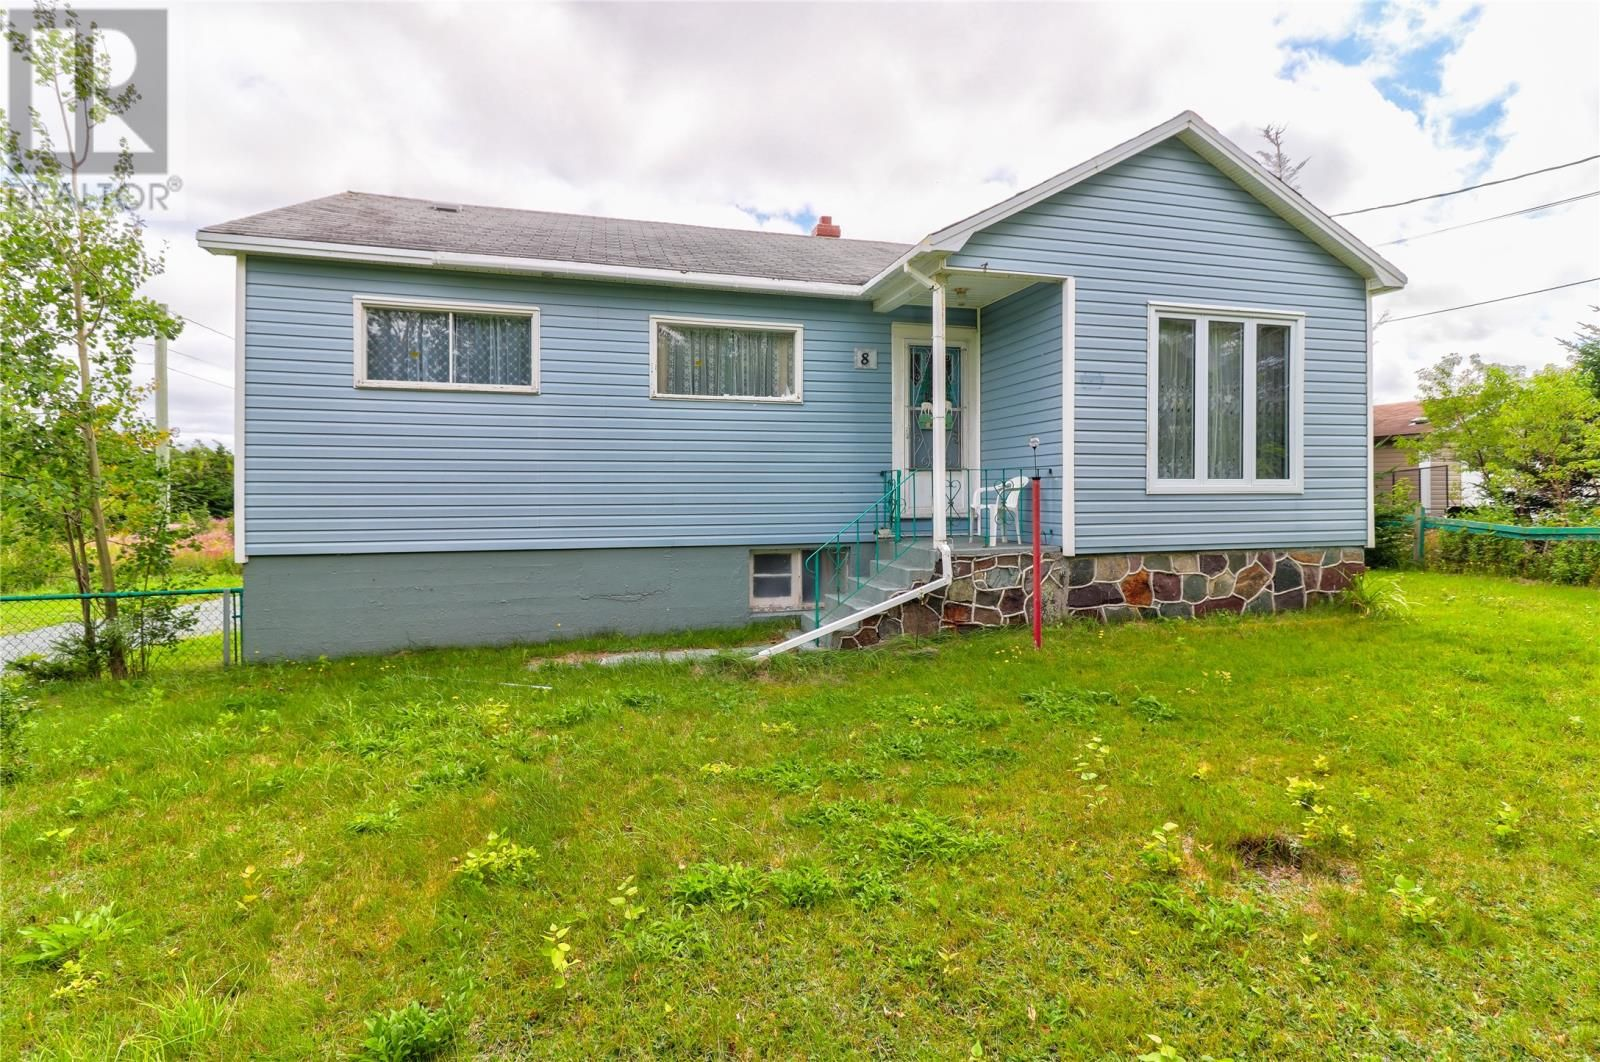 Main Photo: 8 Blackberry Crescent in Torbay: House for sale : MLS®# 1236499